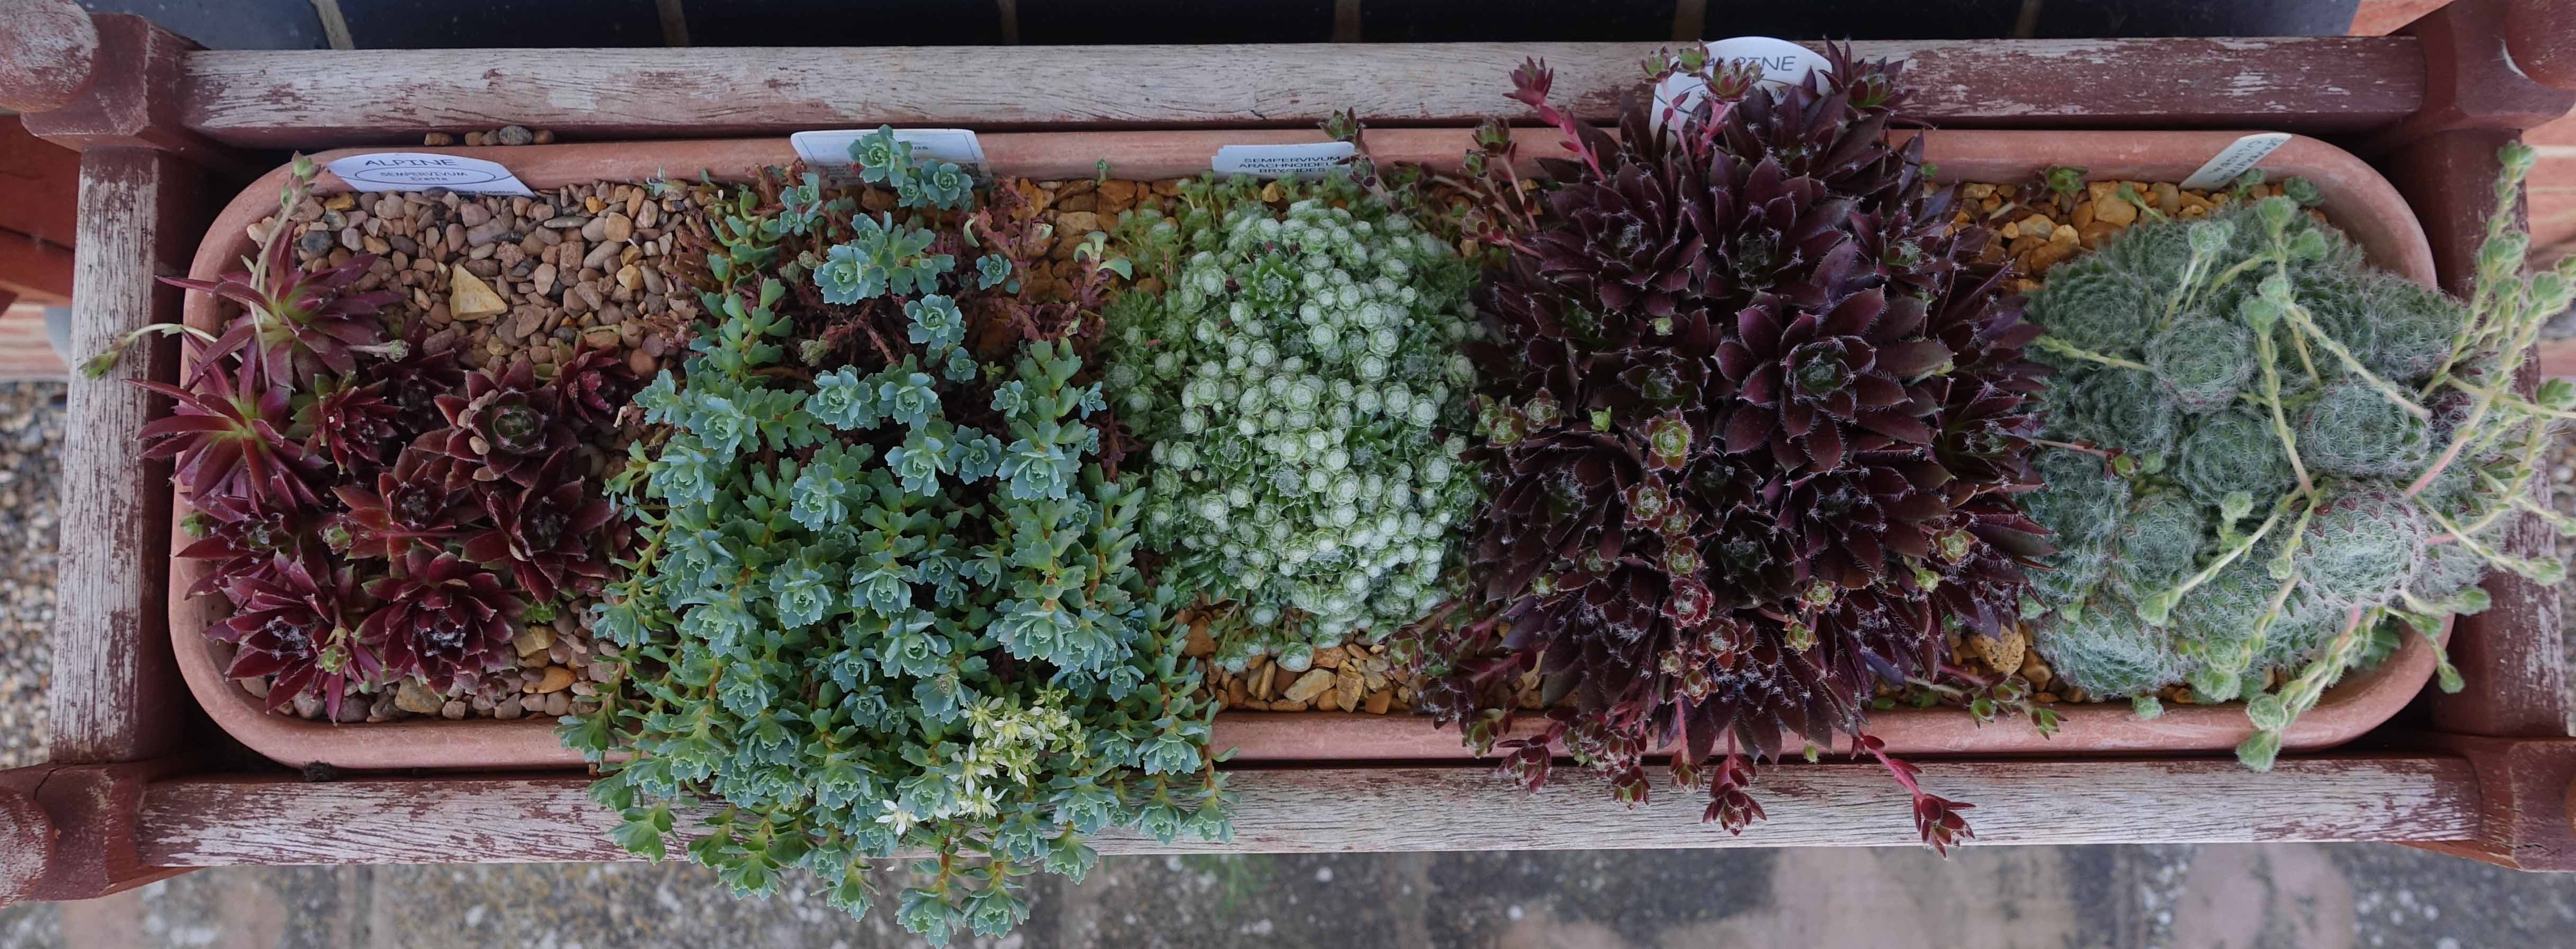 right-hand-window-box-after_3.jpg